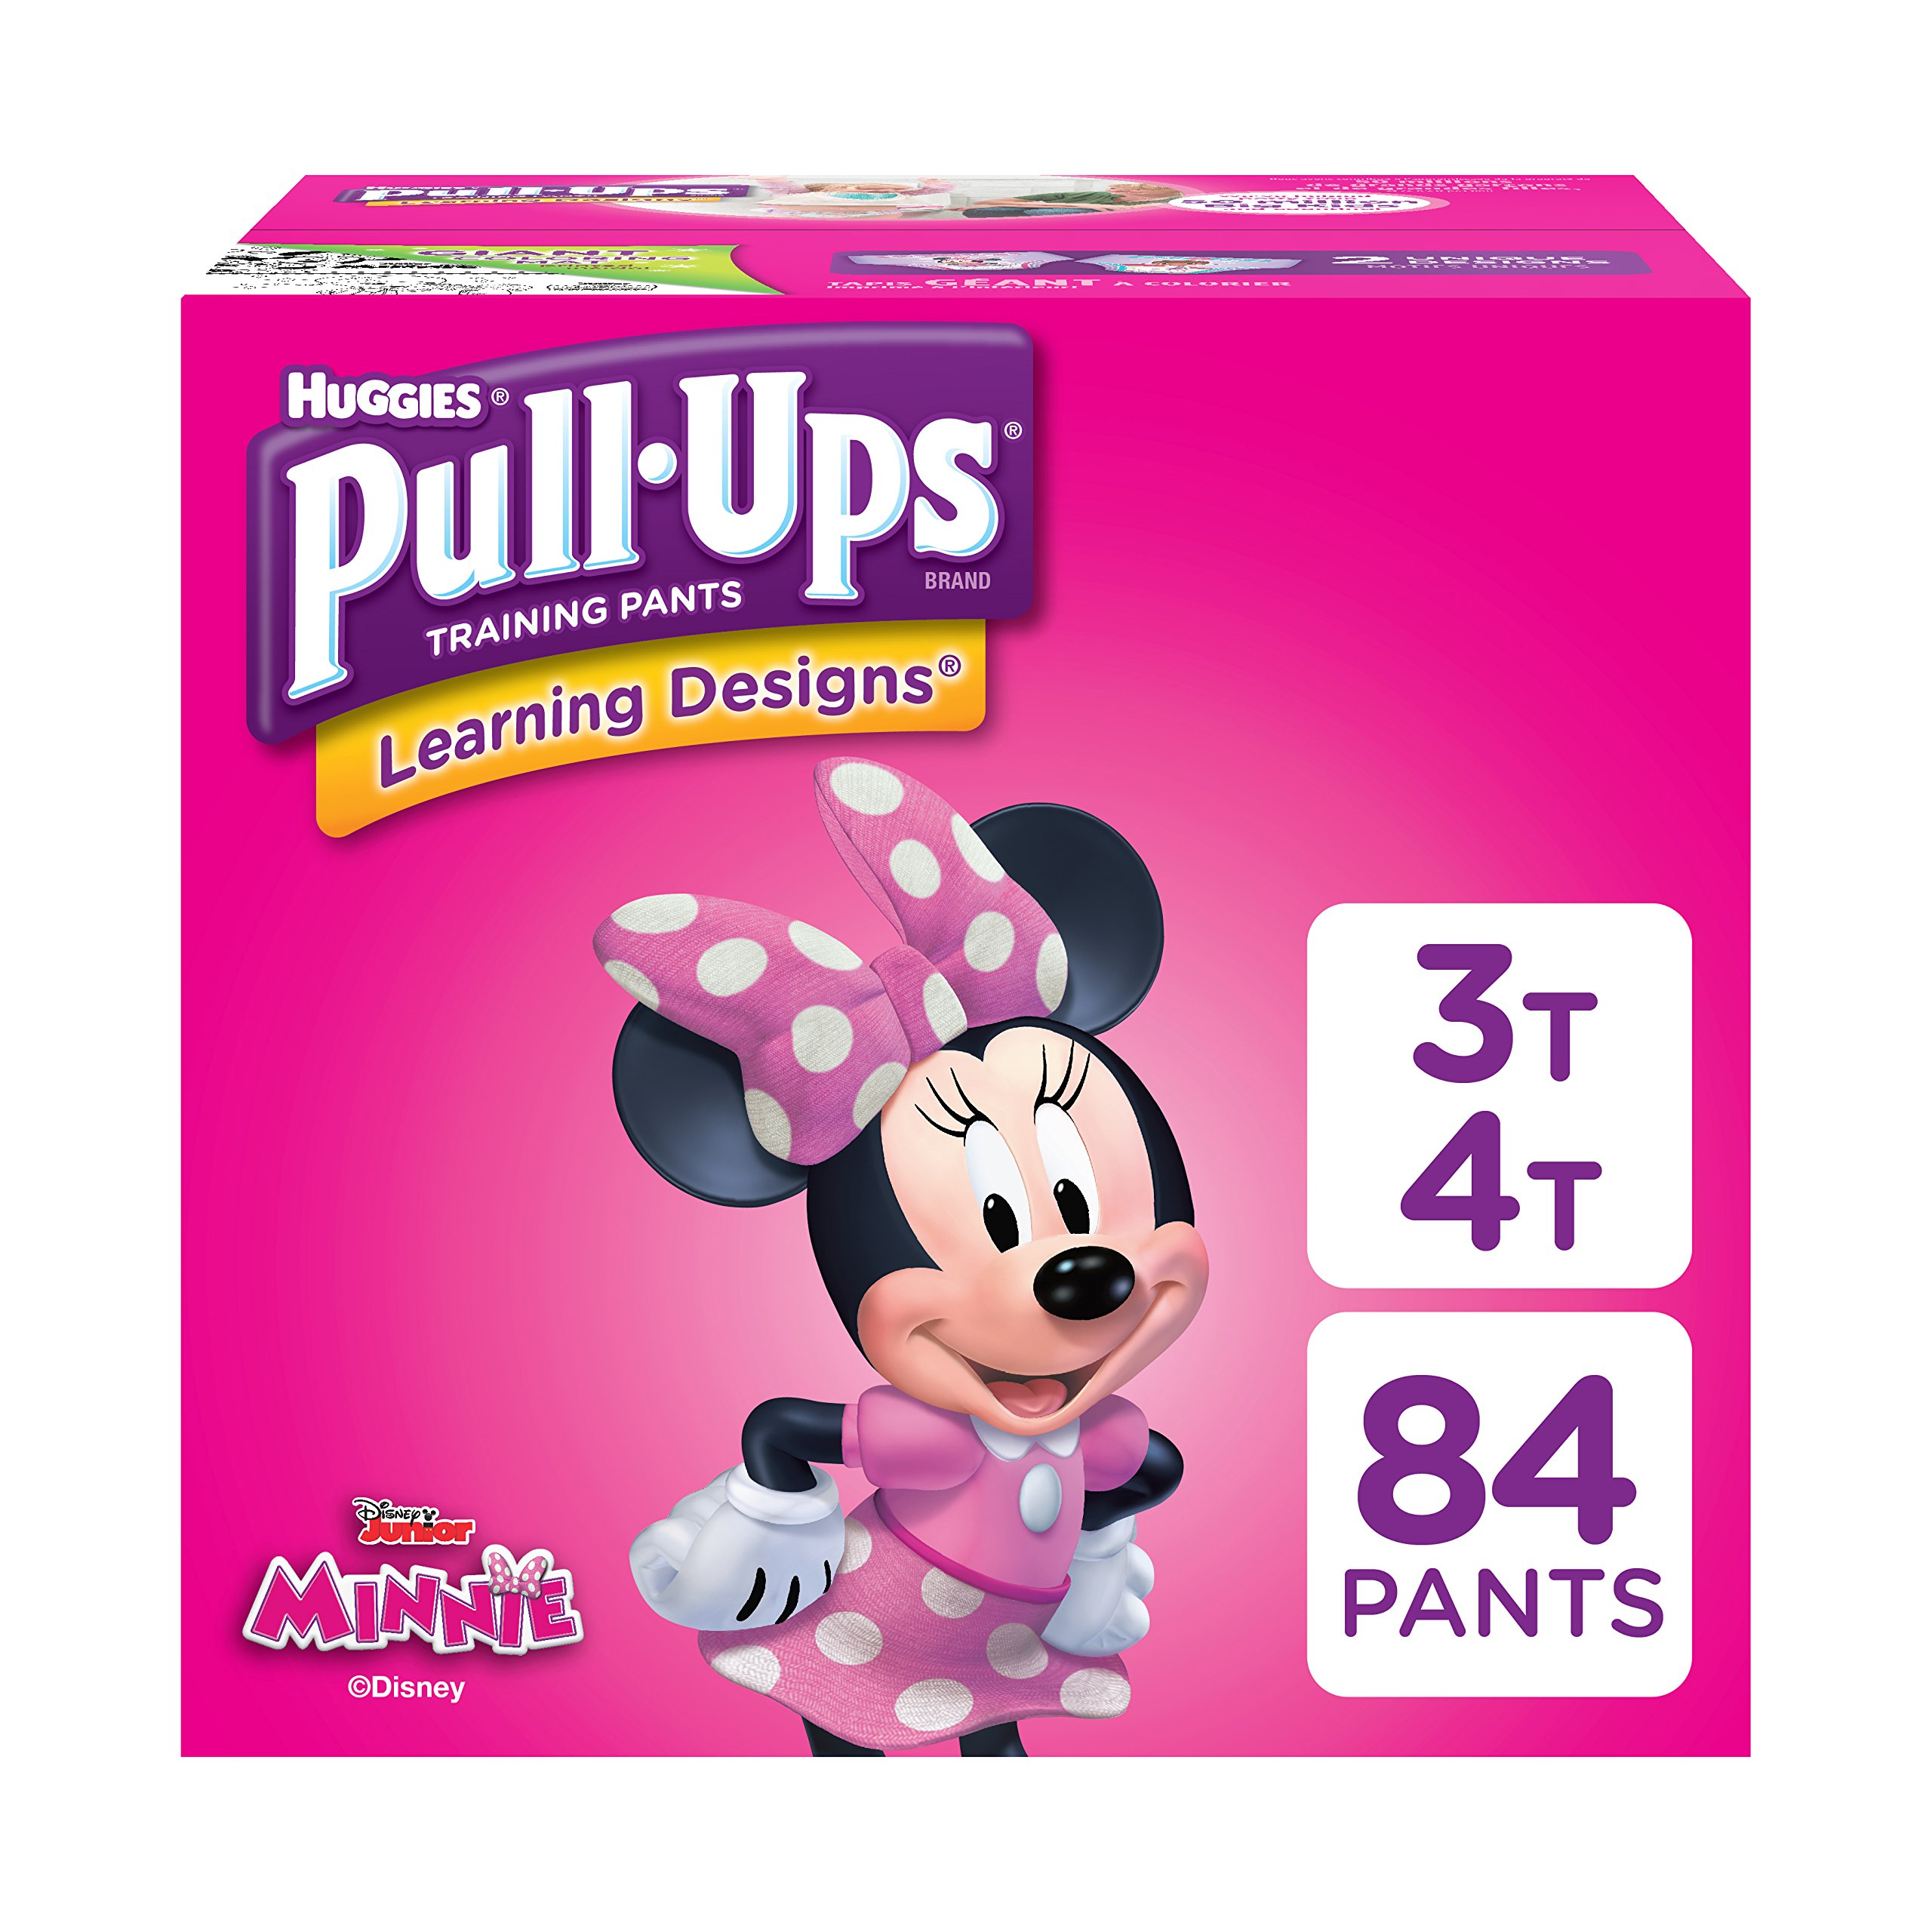 Huggies  Pull-Ups Learning Designs Potty Training Pants for Girls, 3T-4T (32-40 lb.), 84 Ct. (Packaging May Vary)